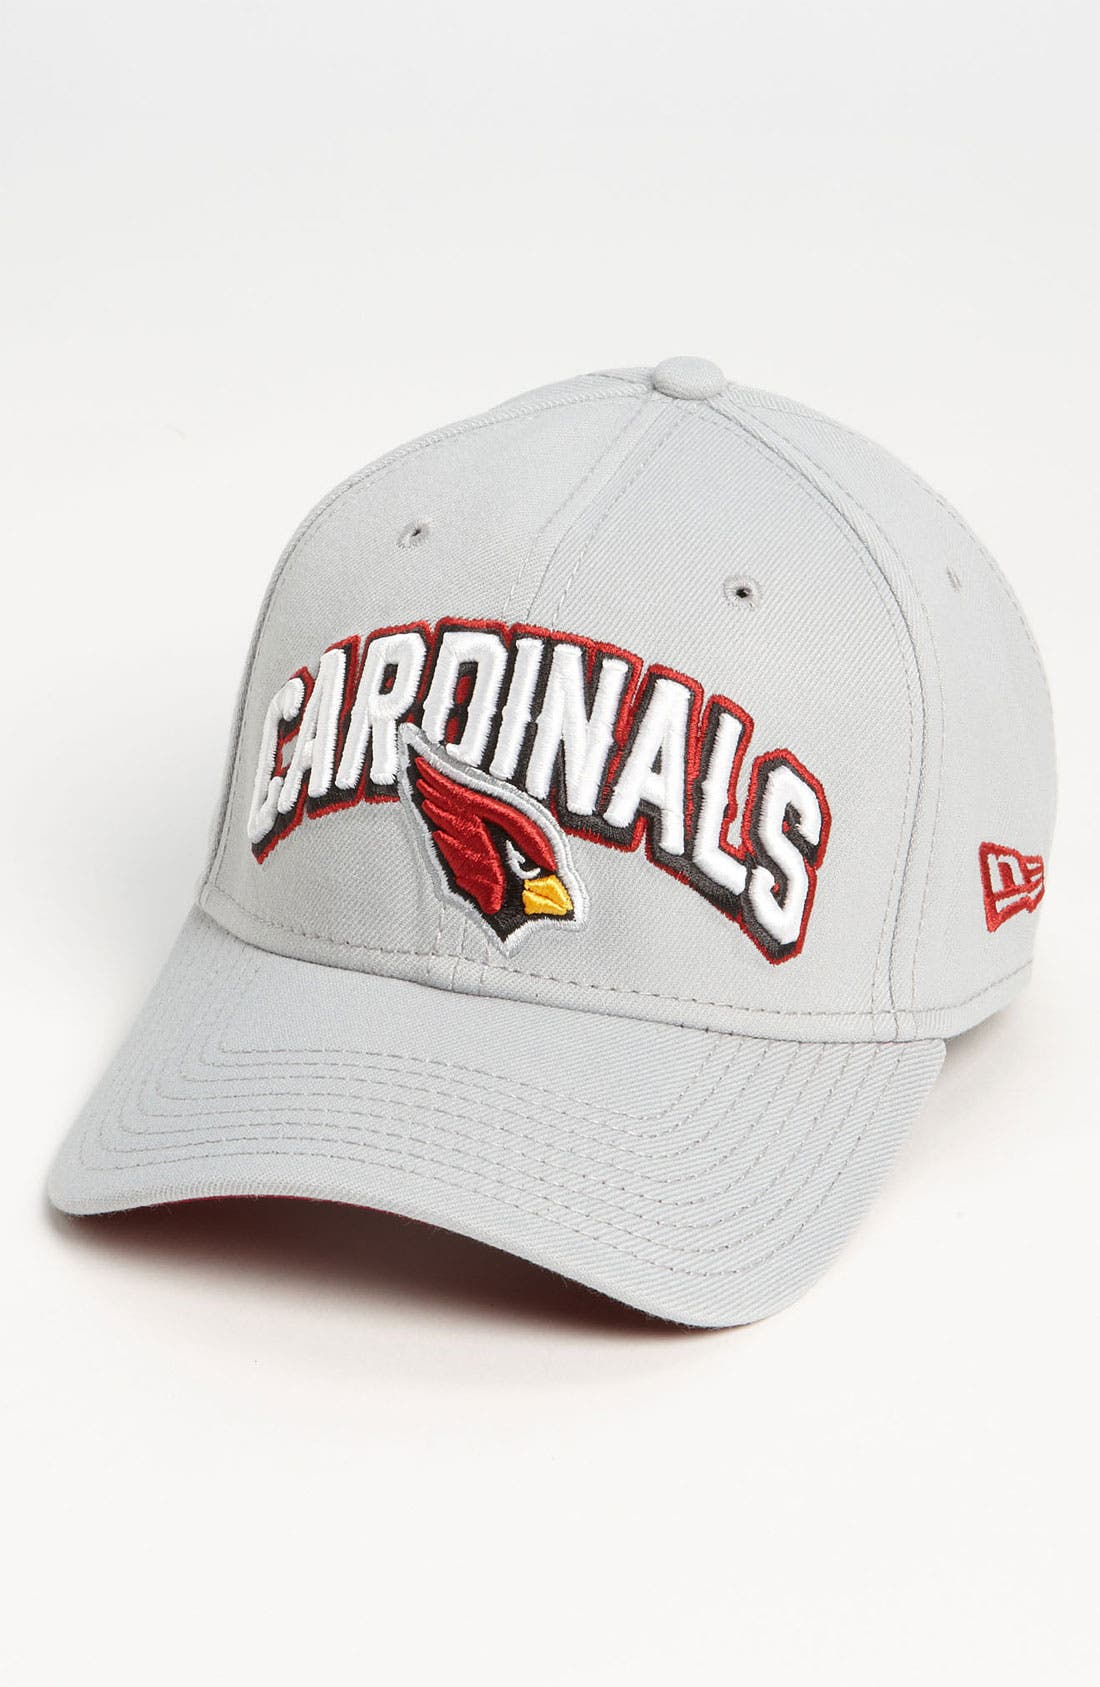 Alternate Image 1 Selected - New Era Cap 'NFL Draft - Arizona Cardinals' Baseball Cap